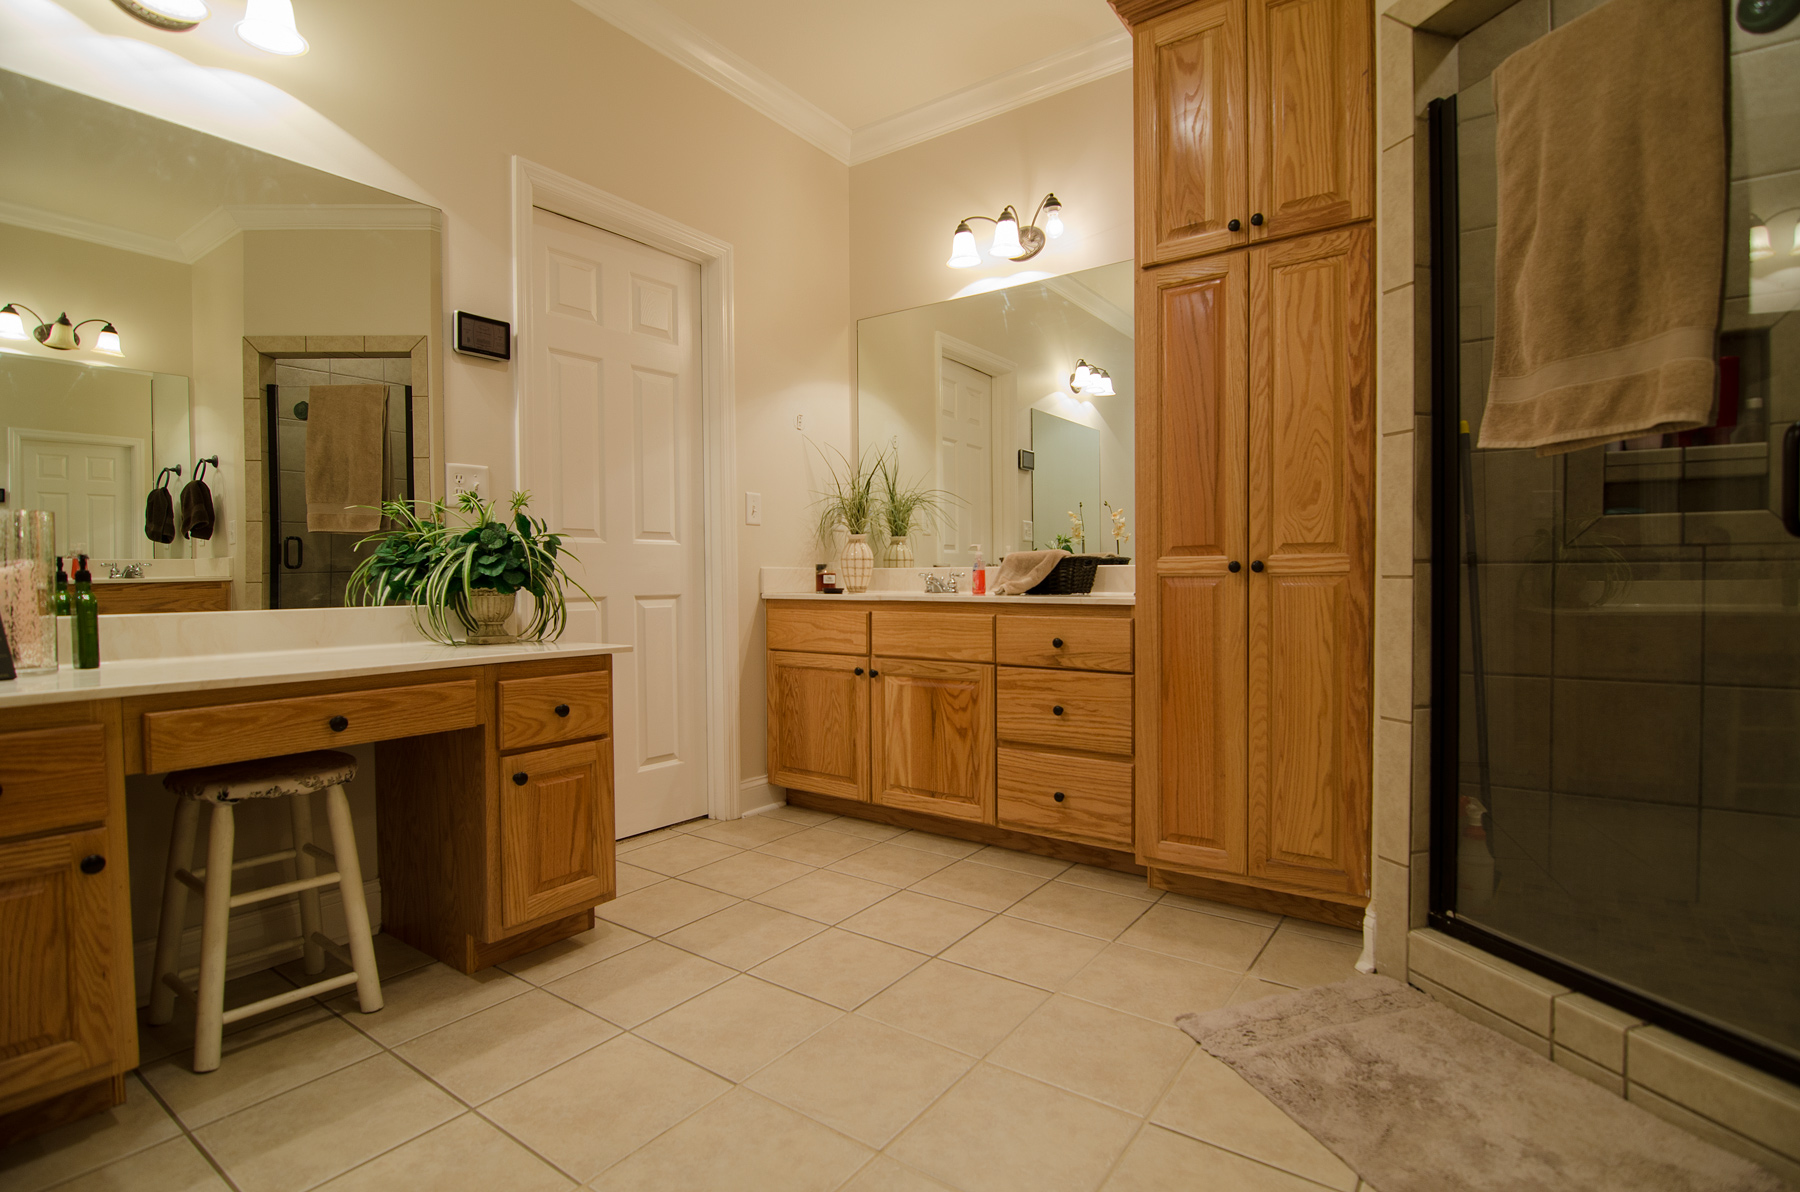 3riversrealty-masterbath.jpg